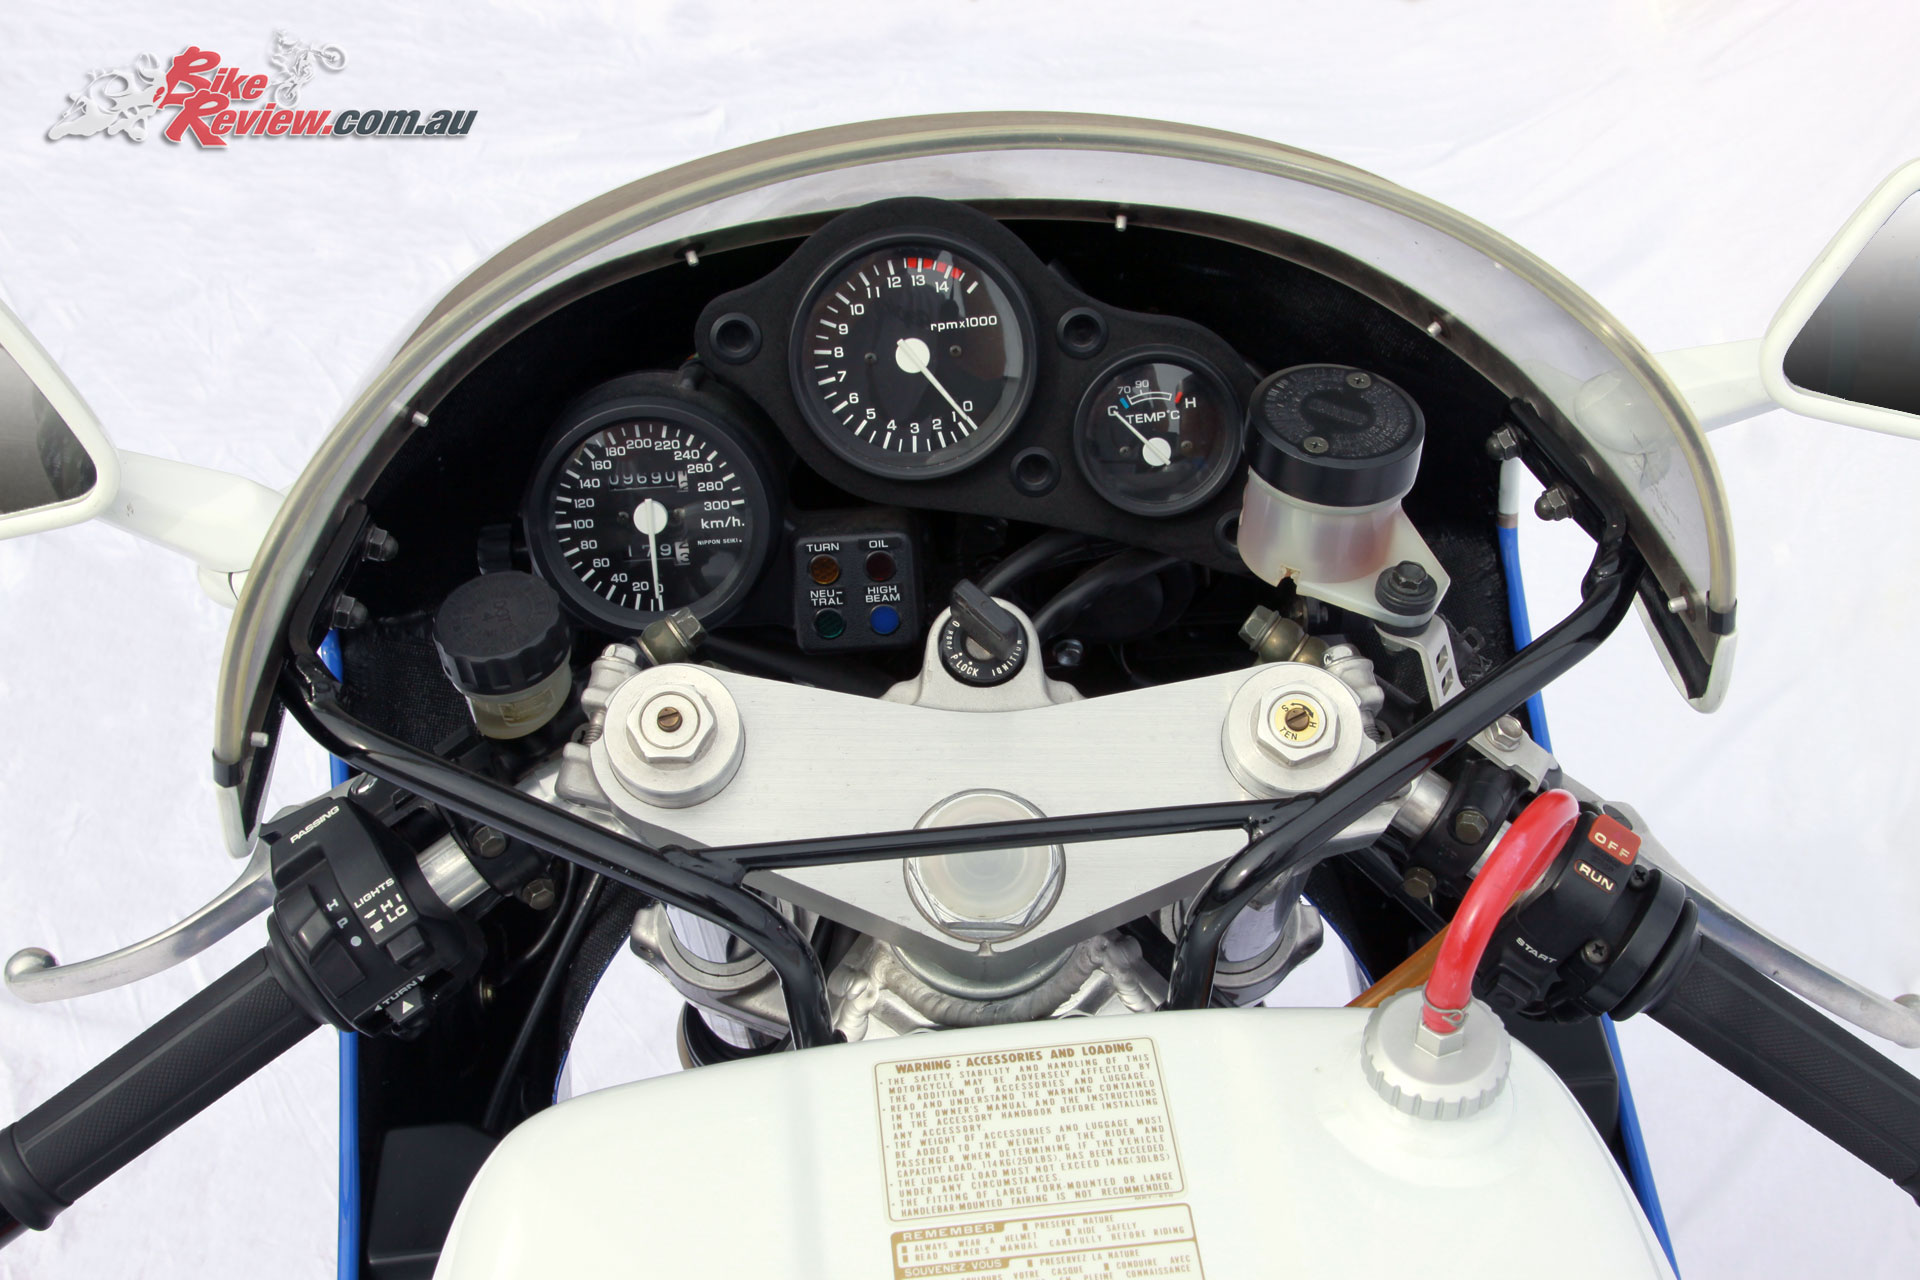 The list of components on the RC30 would have left most motorcyclists drooling even by today's standards